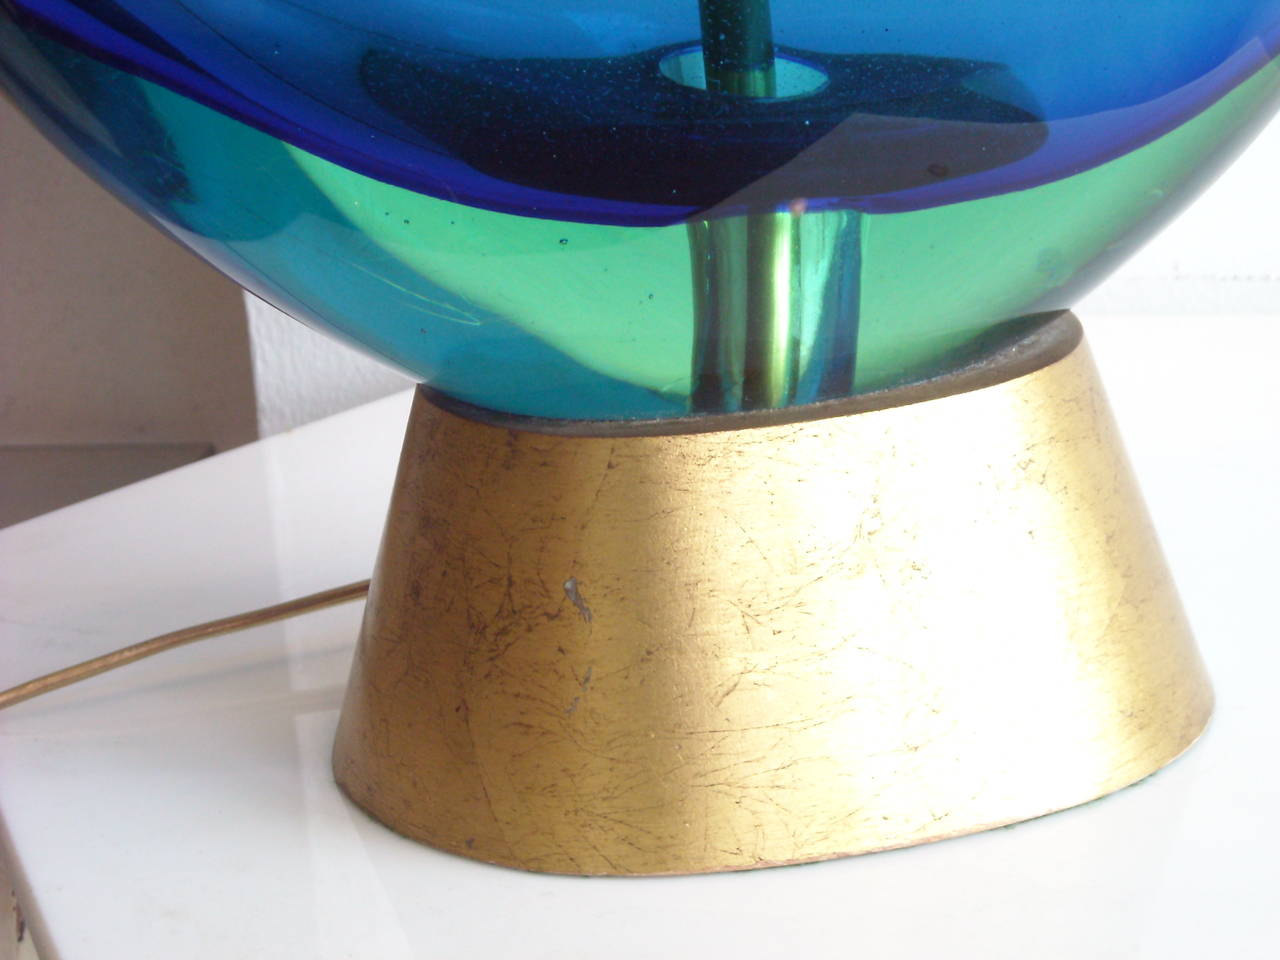 Great Murano lamp by Flavio Poli. Over all measures diameter 14 total high 27 inches.